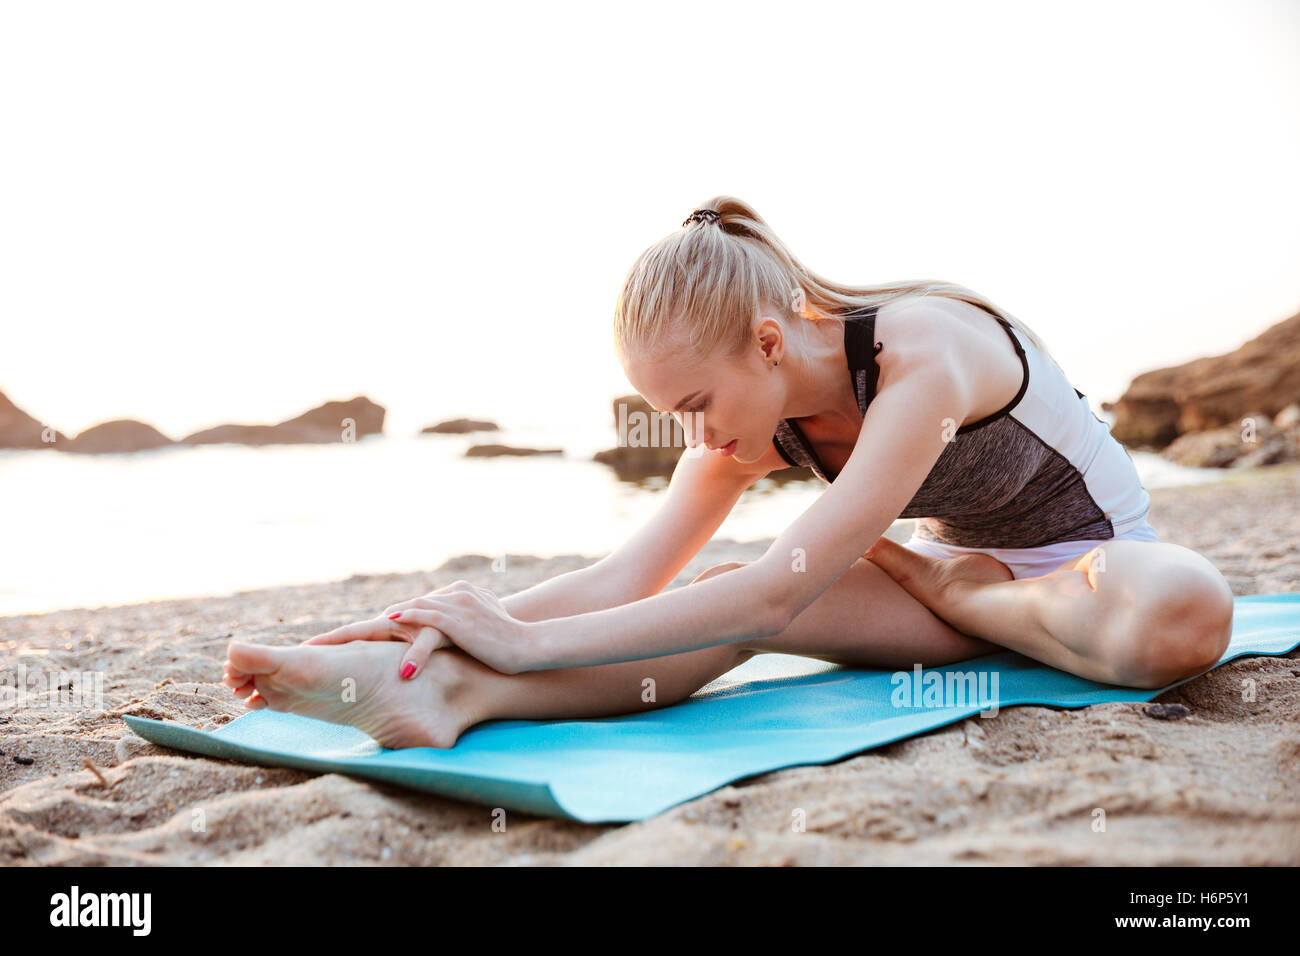 Young woman doing yoga exercises on mat outdoors in the morning - Stock Image